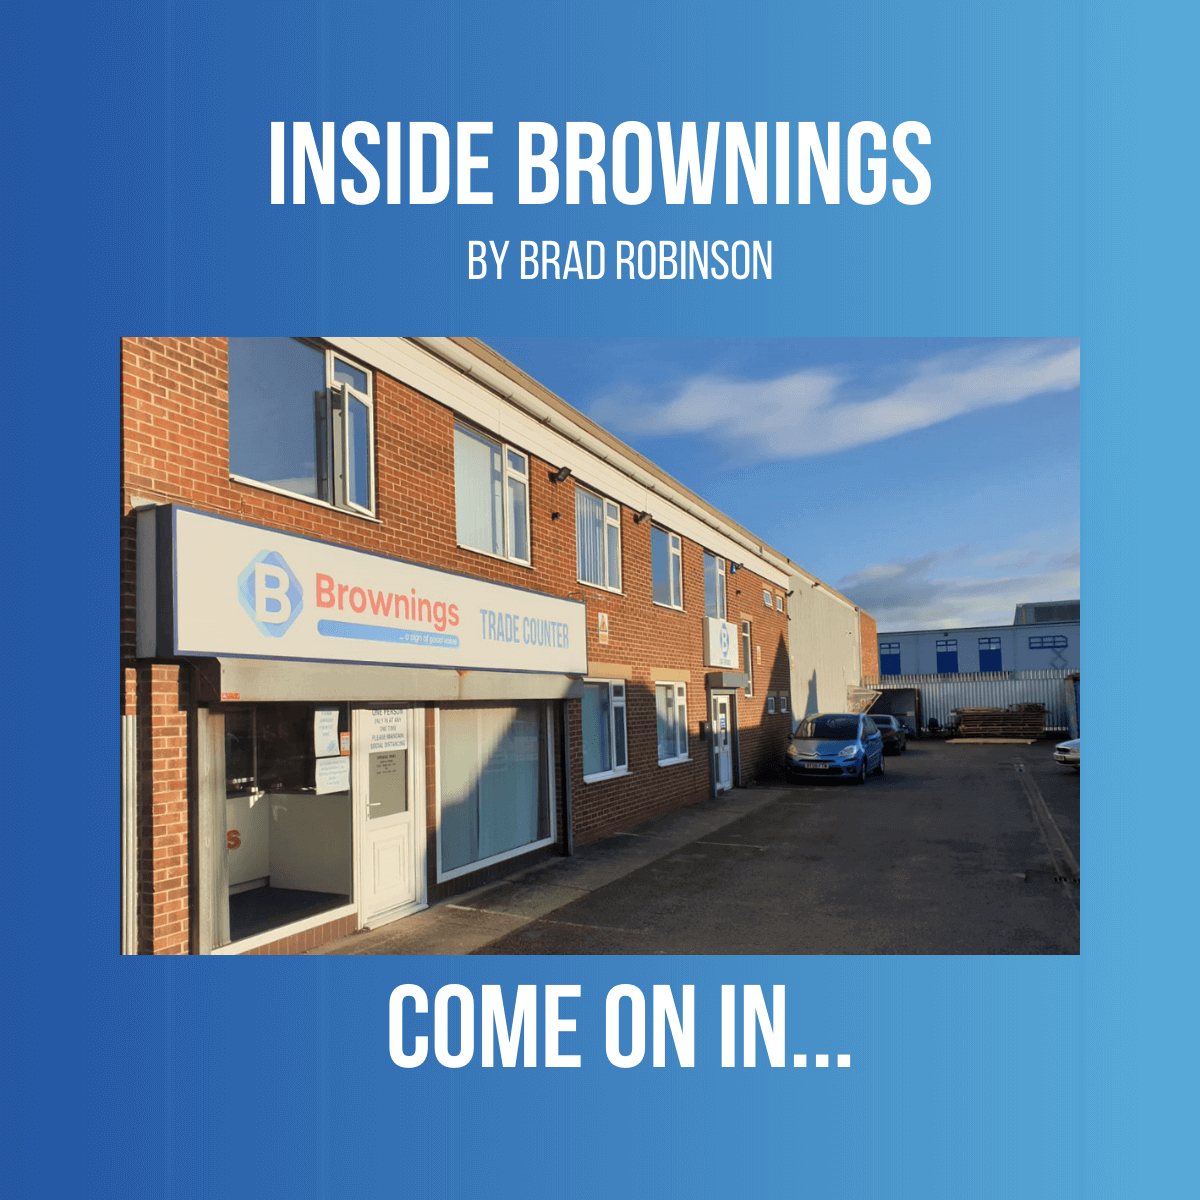 Brownings from within!